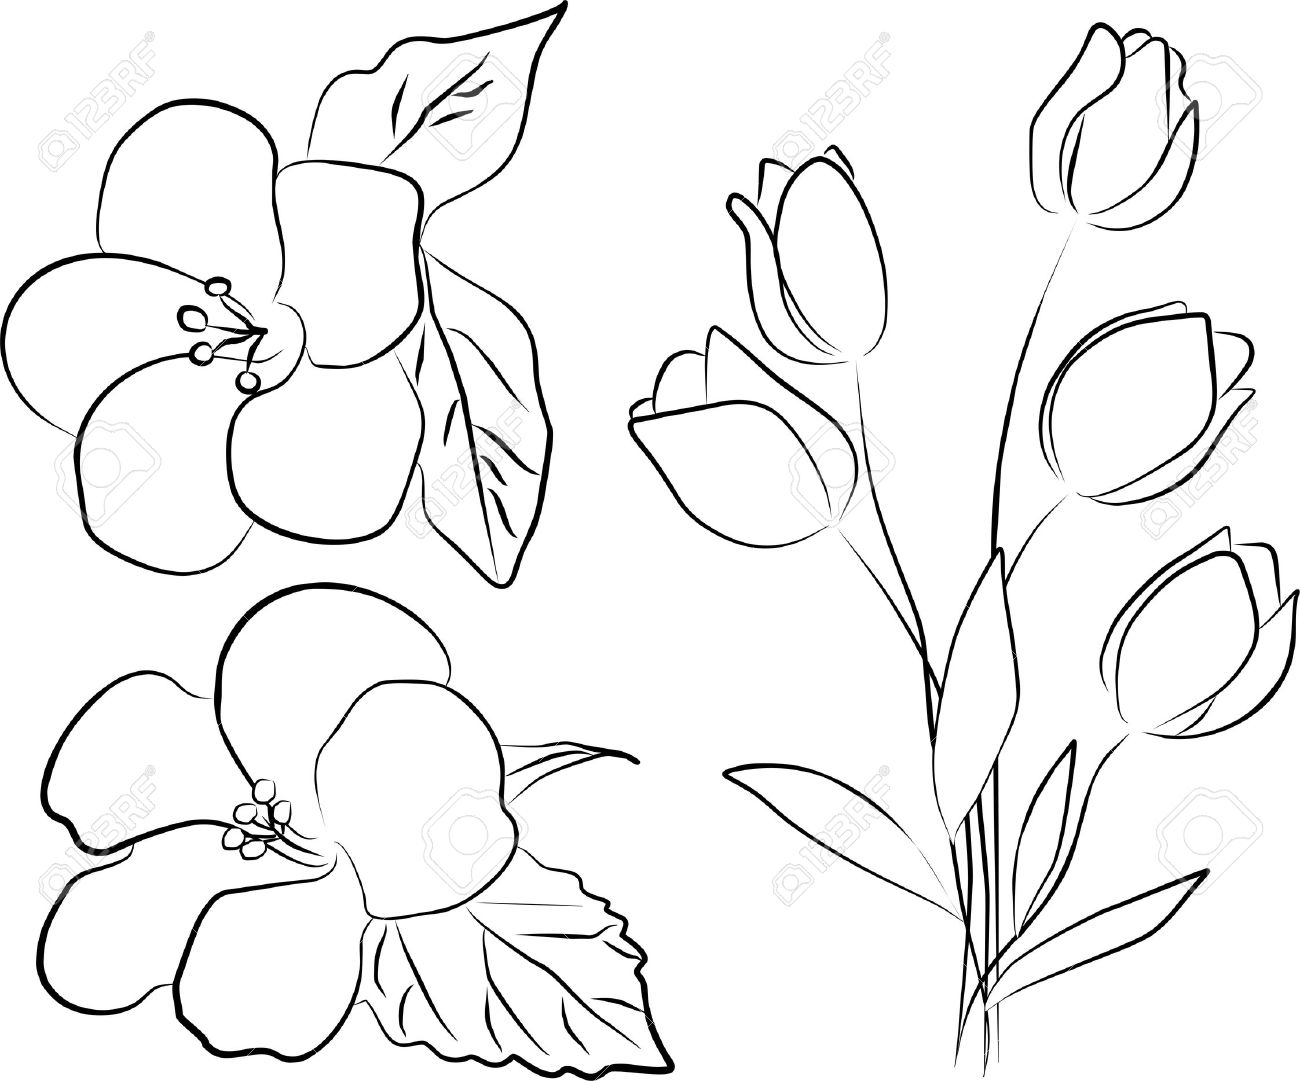 easy tulip drawing a simple drawing of parrot tulip coloring page tulip tulip easy drawing